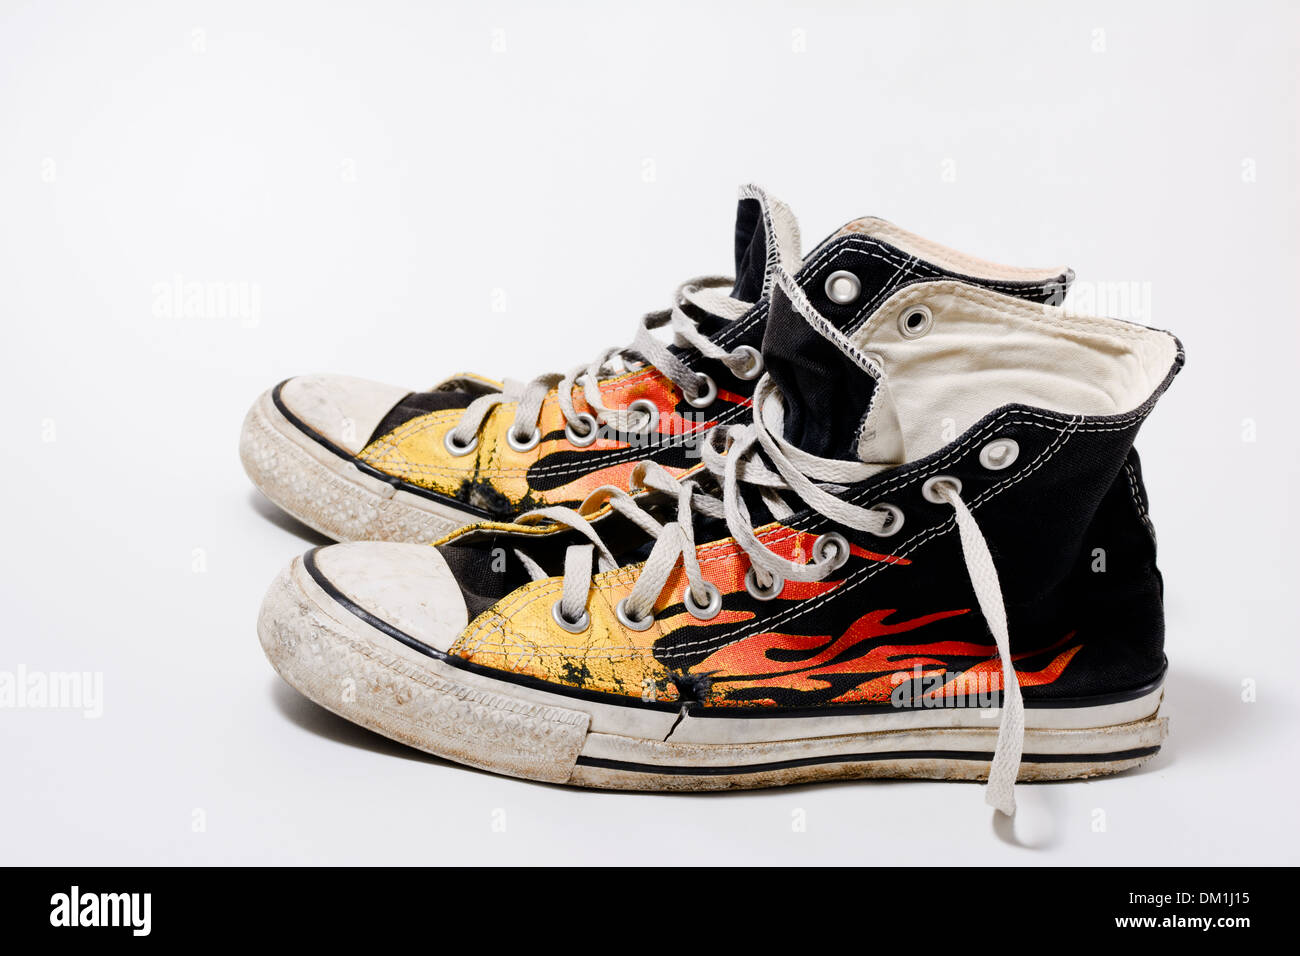 Worn and dirty Converse All Star shoes isolated on white background - Stock Image